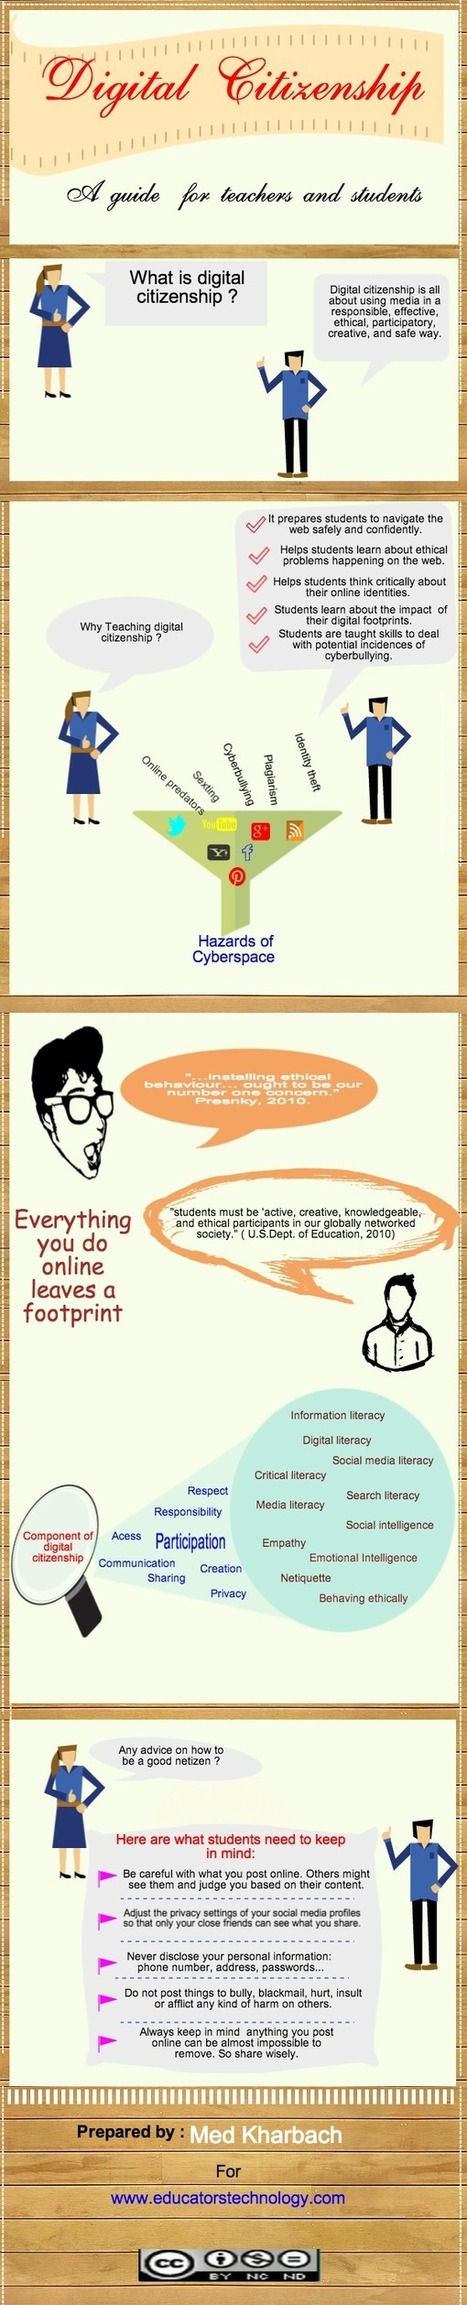 Digital Citizenship Explained for Teachers via @medkh9 | digital citizenship | Scoop.it